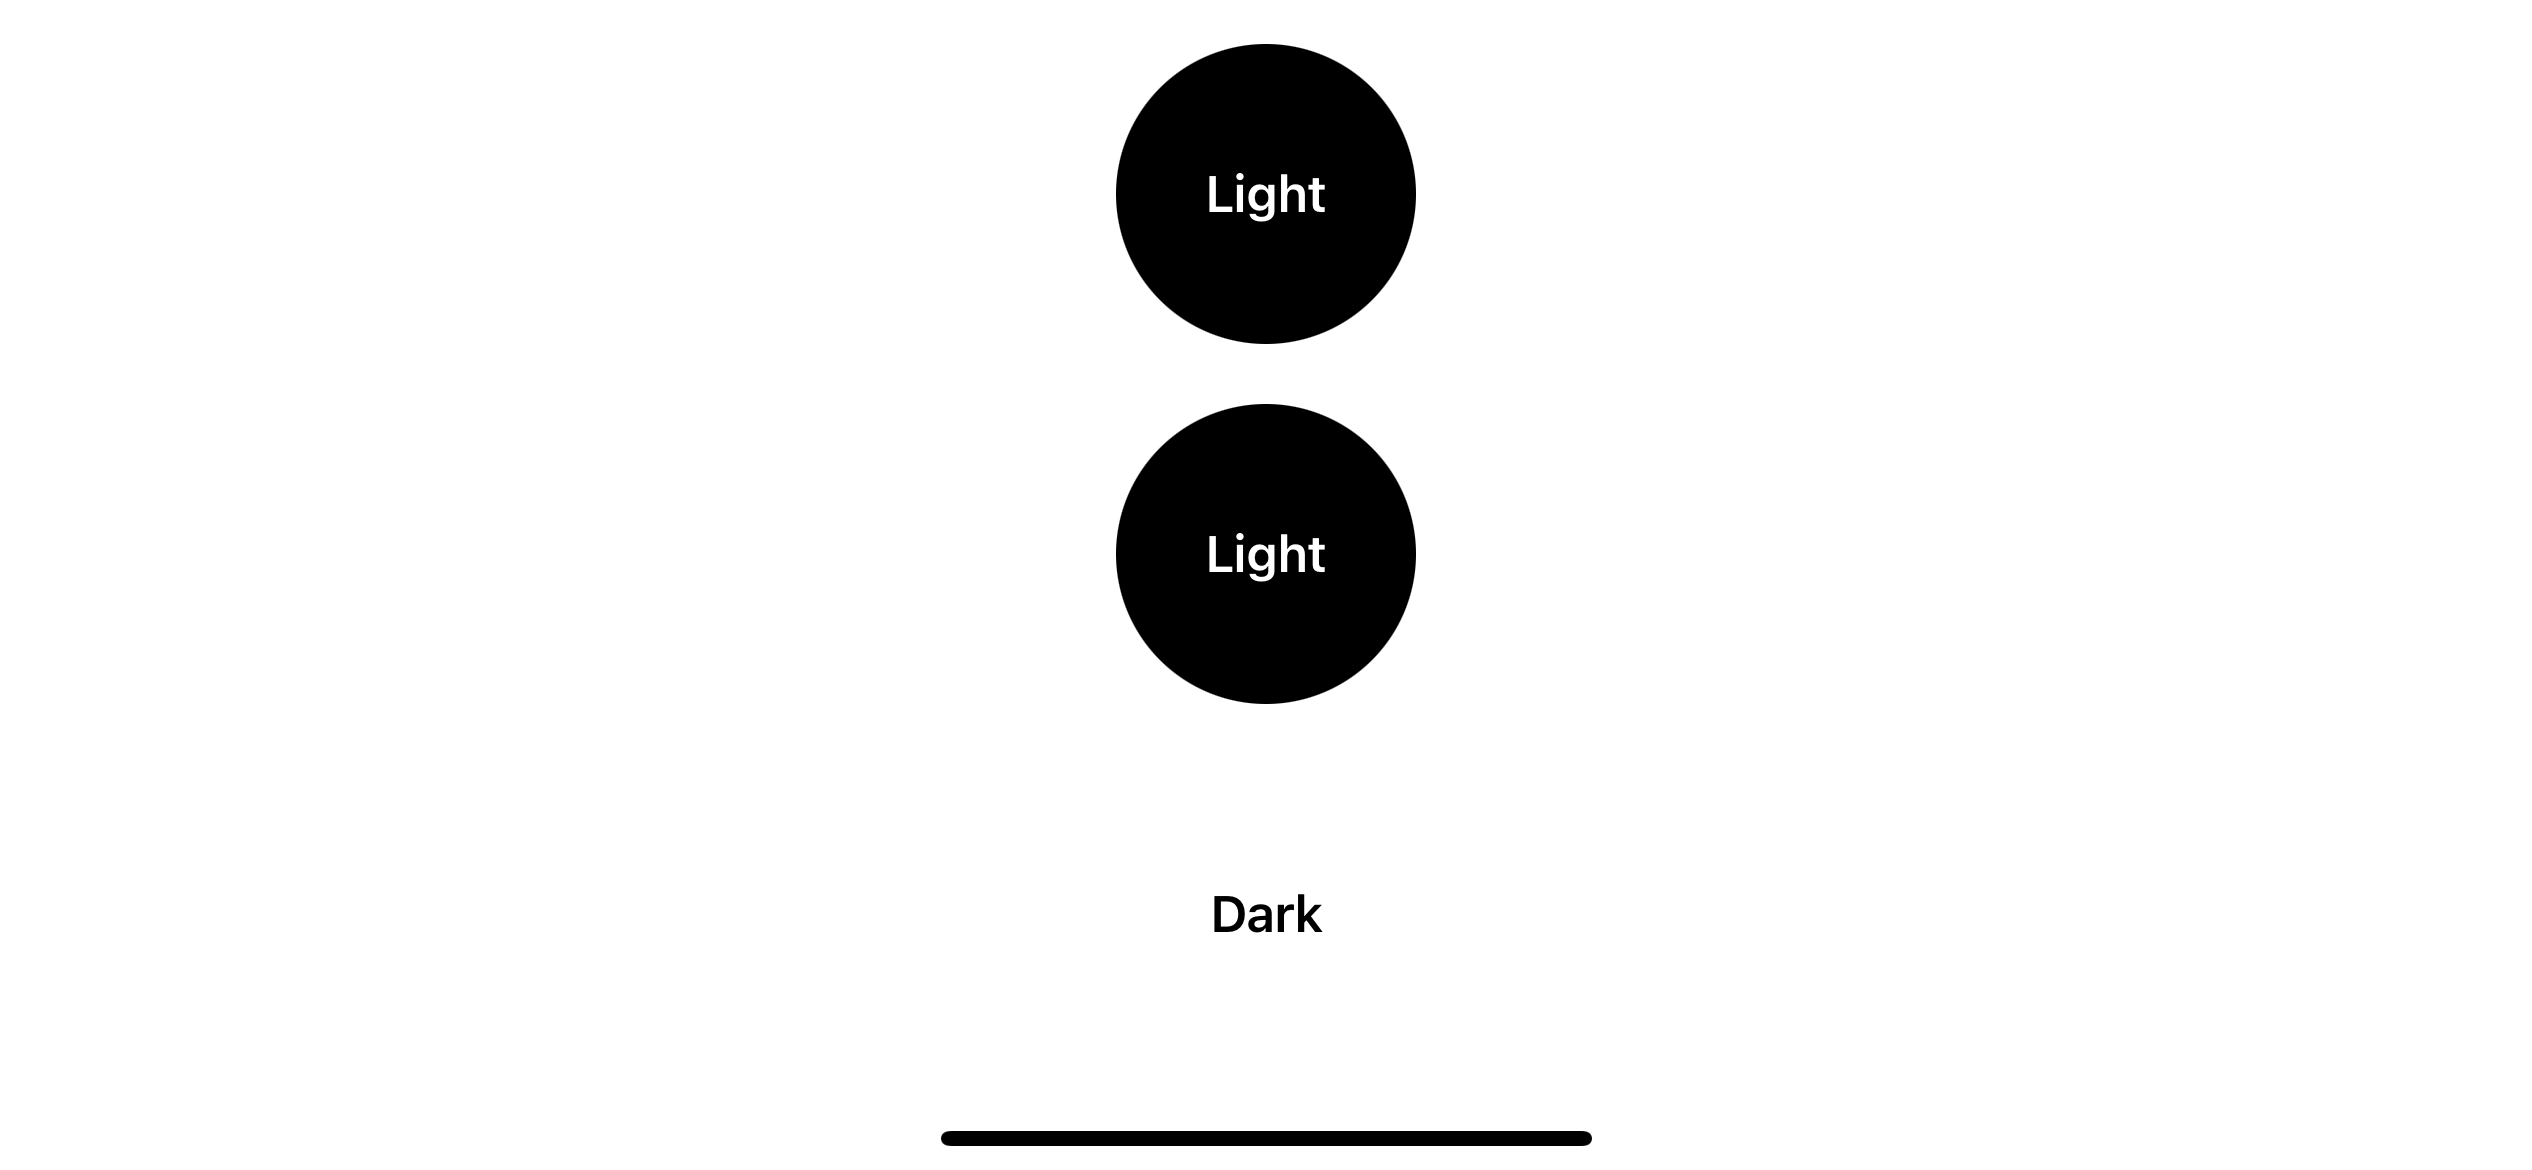 Result in light appearance